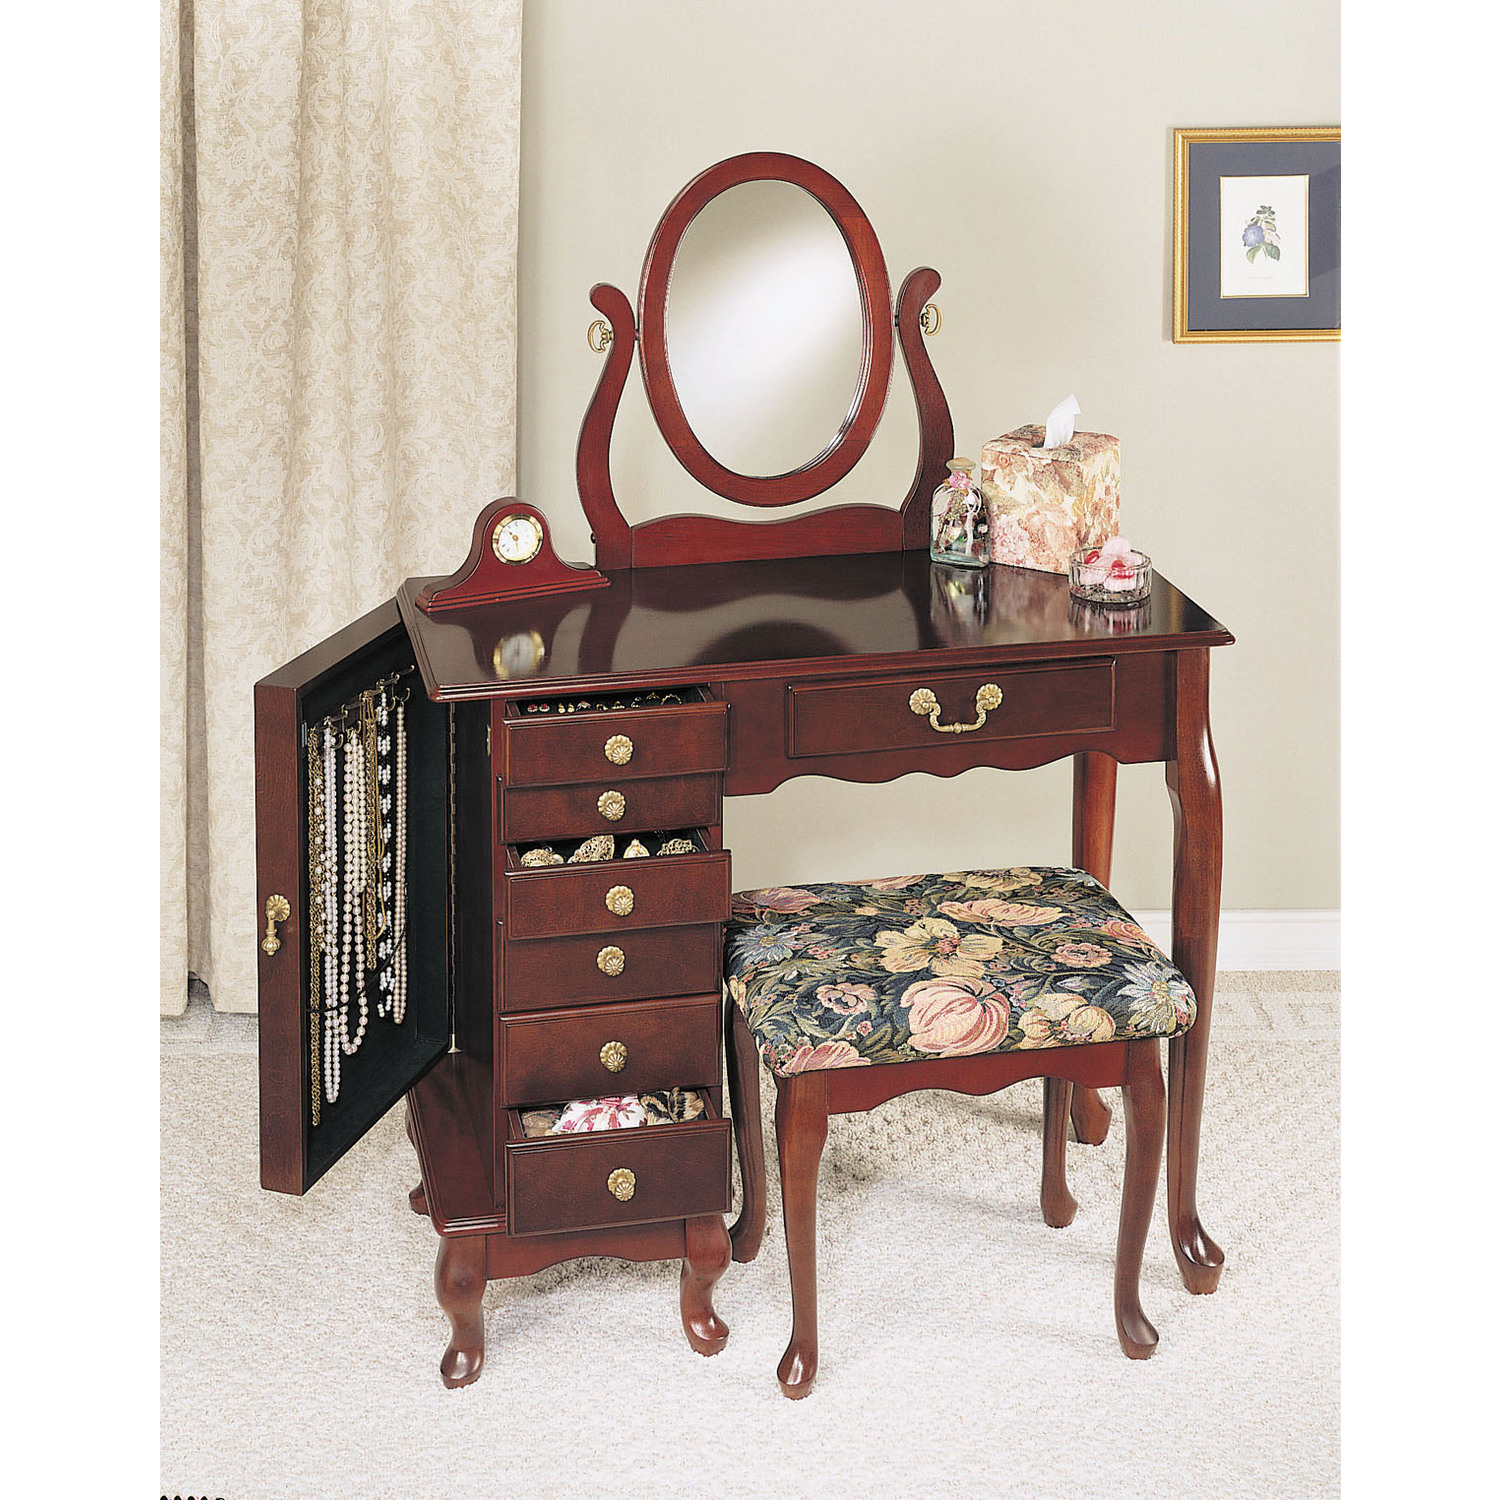 Heirloom Cherry Jewelry Armoire Vanity Mirror and Bench 52800